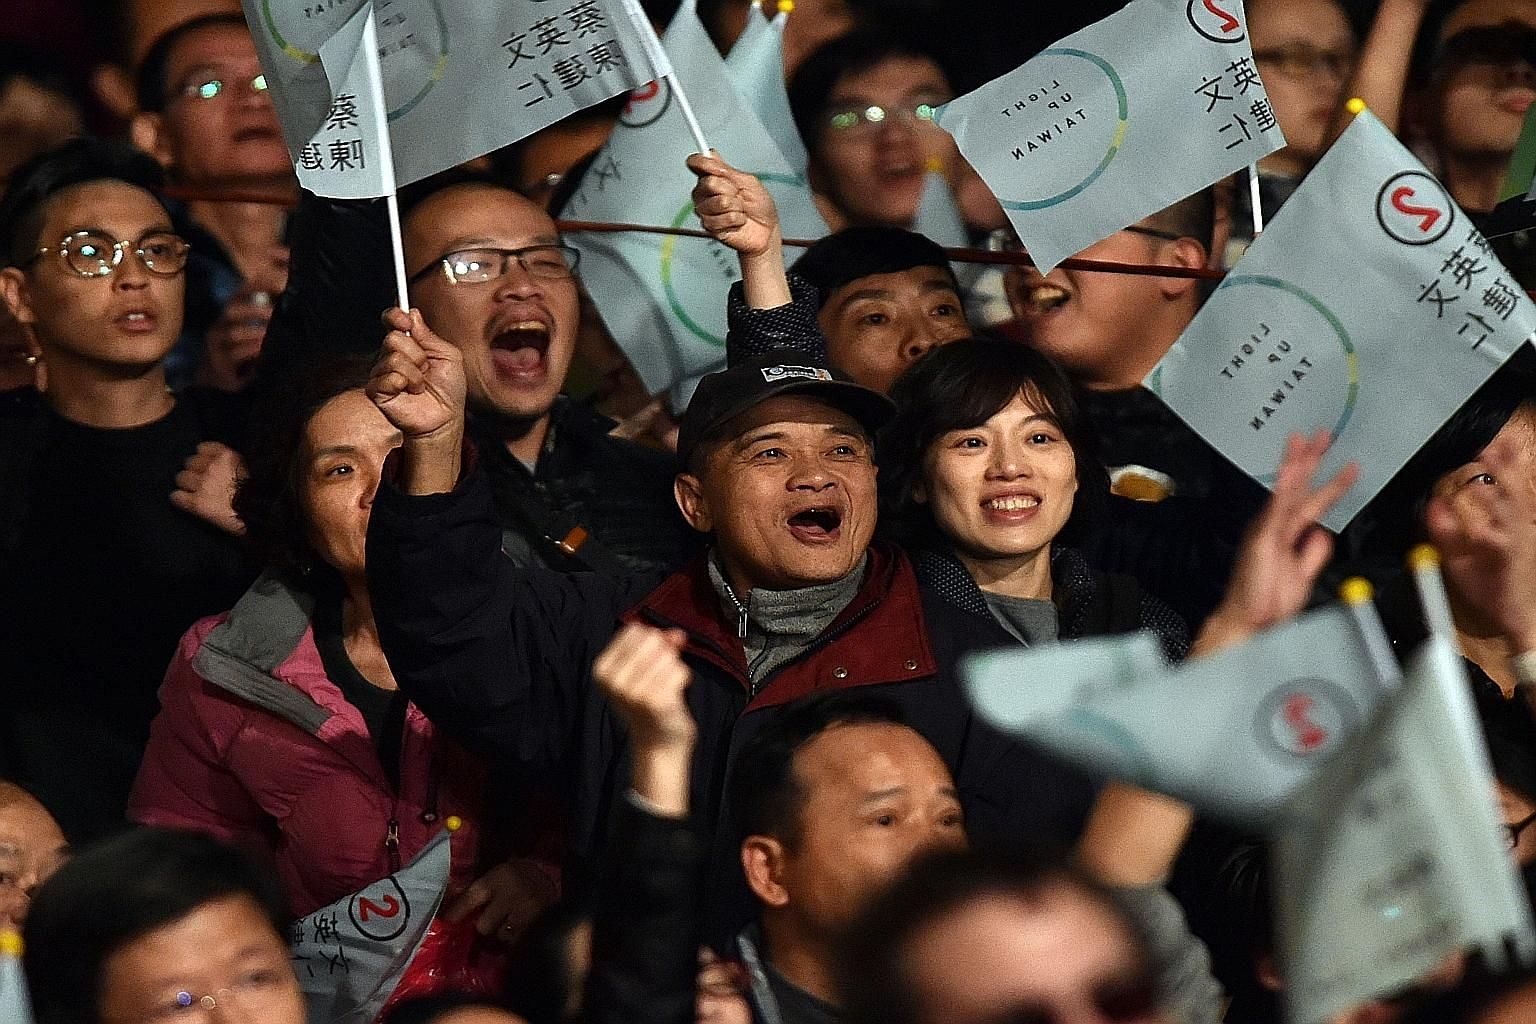 Ms Tsai's supporters cheering after her landslide win against the Kuomintang last weekend. A Tsai-led Taiwan is likely to persist with existing institutional mechanisms to pursue cross-strait relations with China, although the frequency or pace of ex